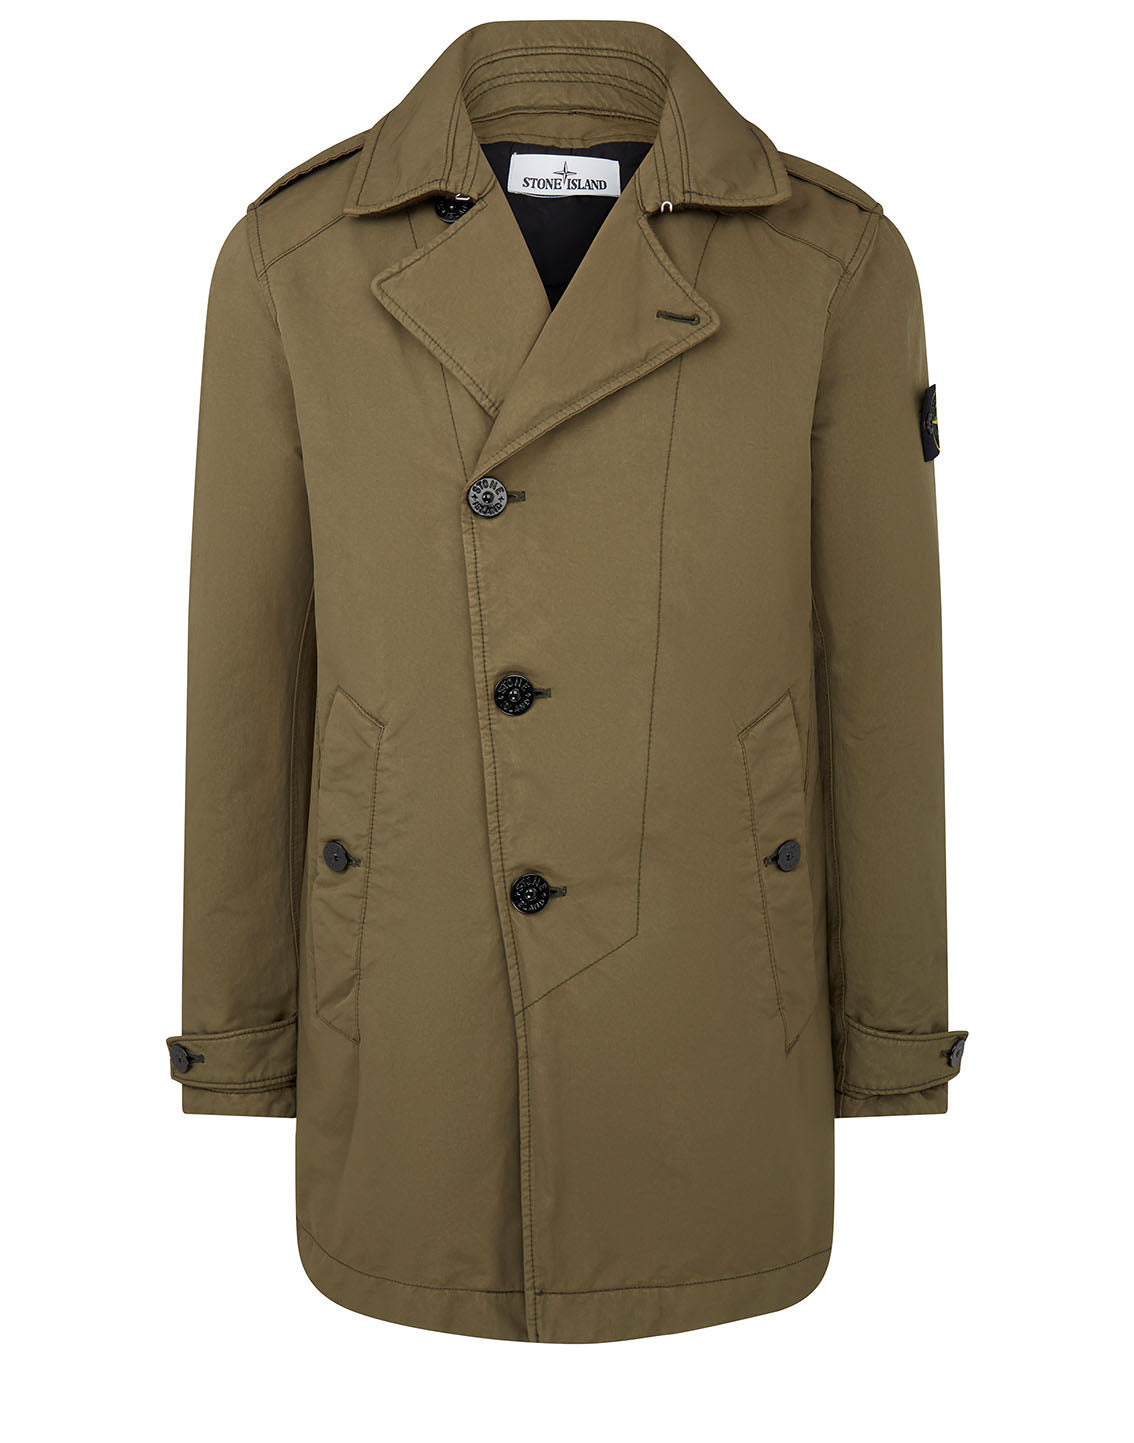 45249 DAVID-TC Short Trench Coat in Olive